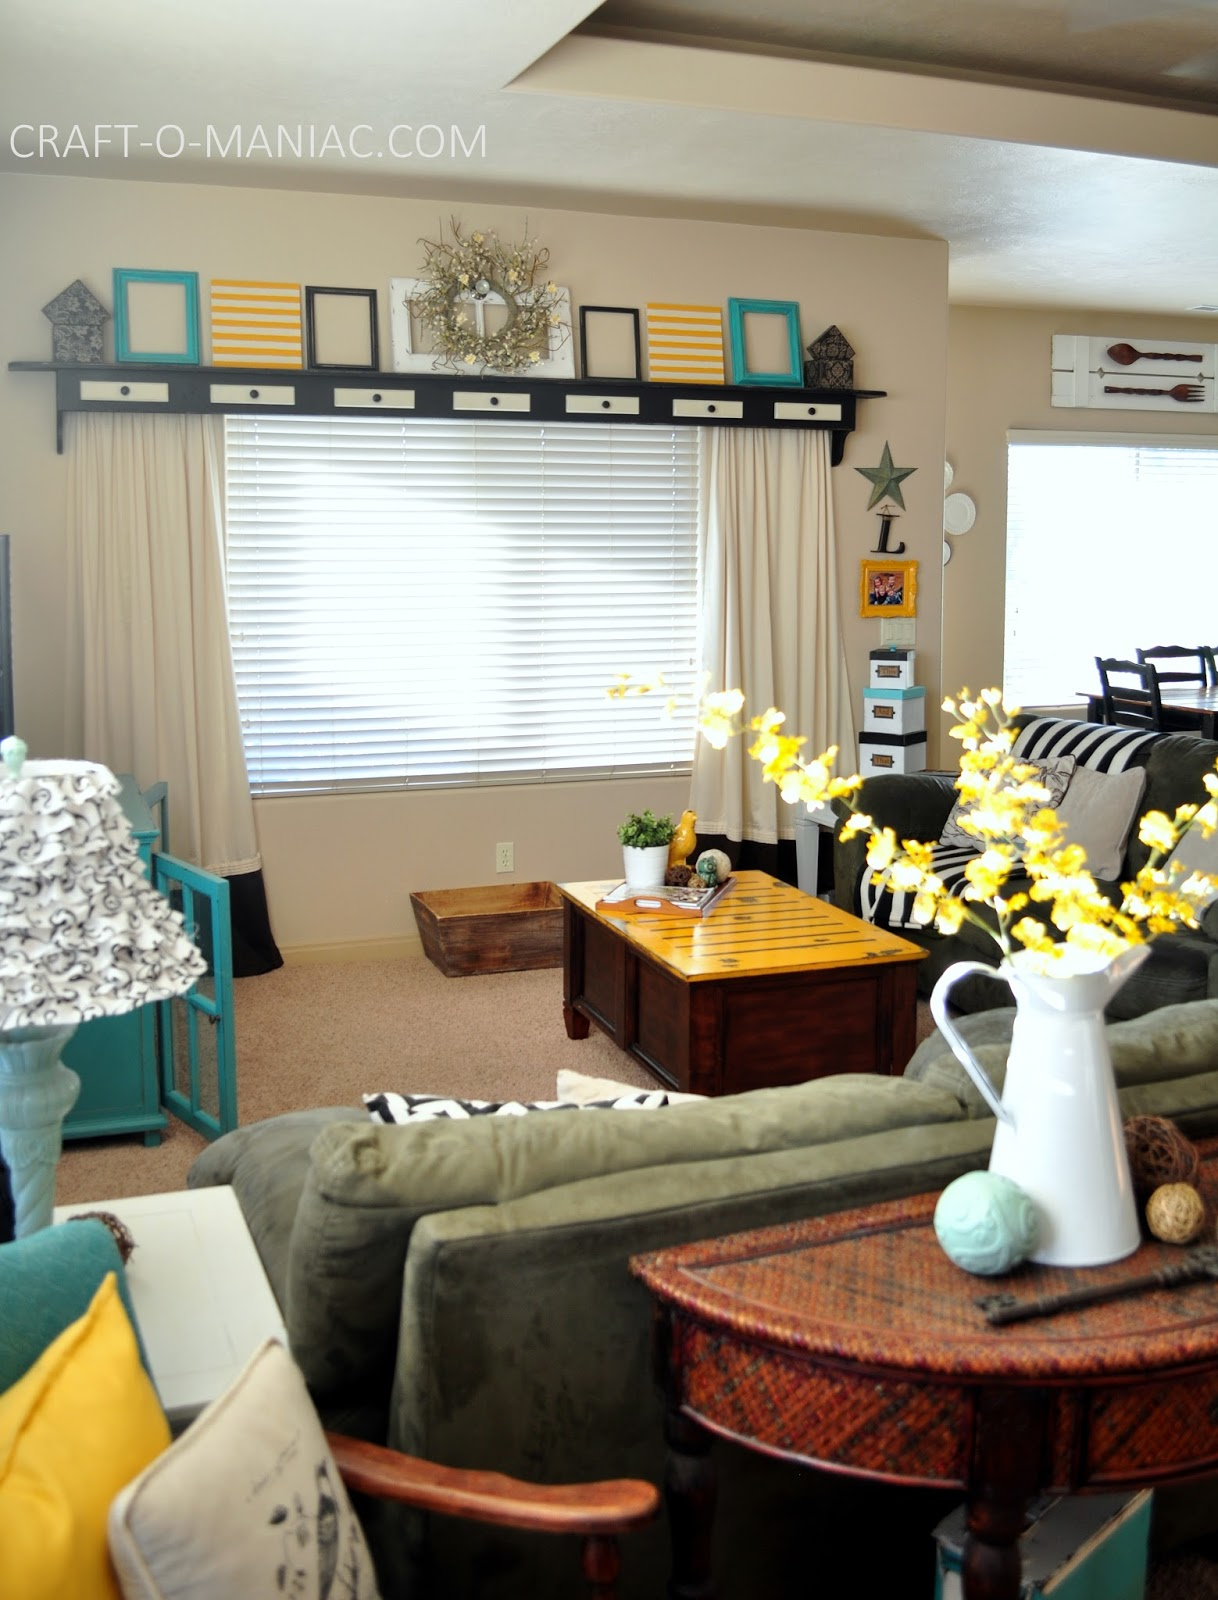 Home Decor My Turquoise And Yellow Family Room Craft O